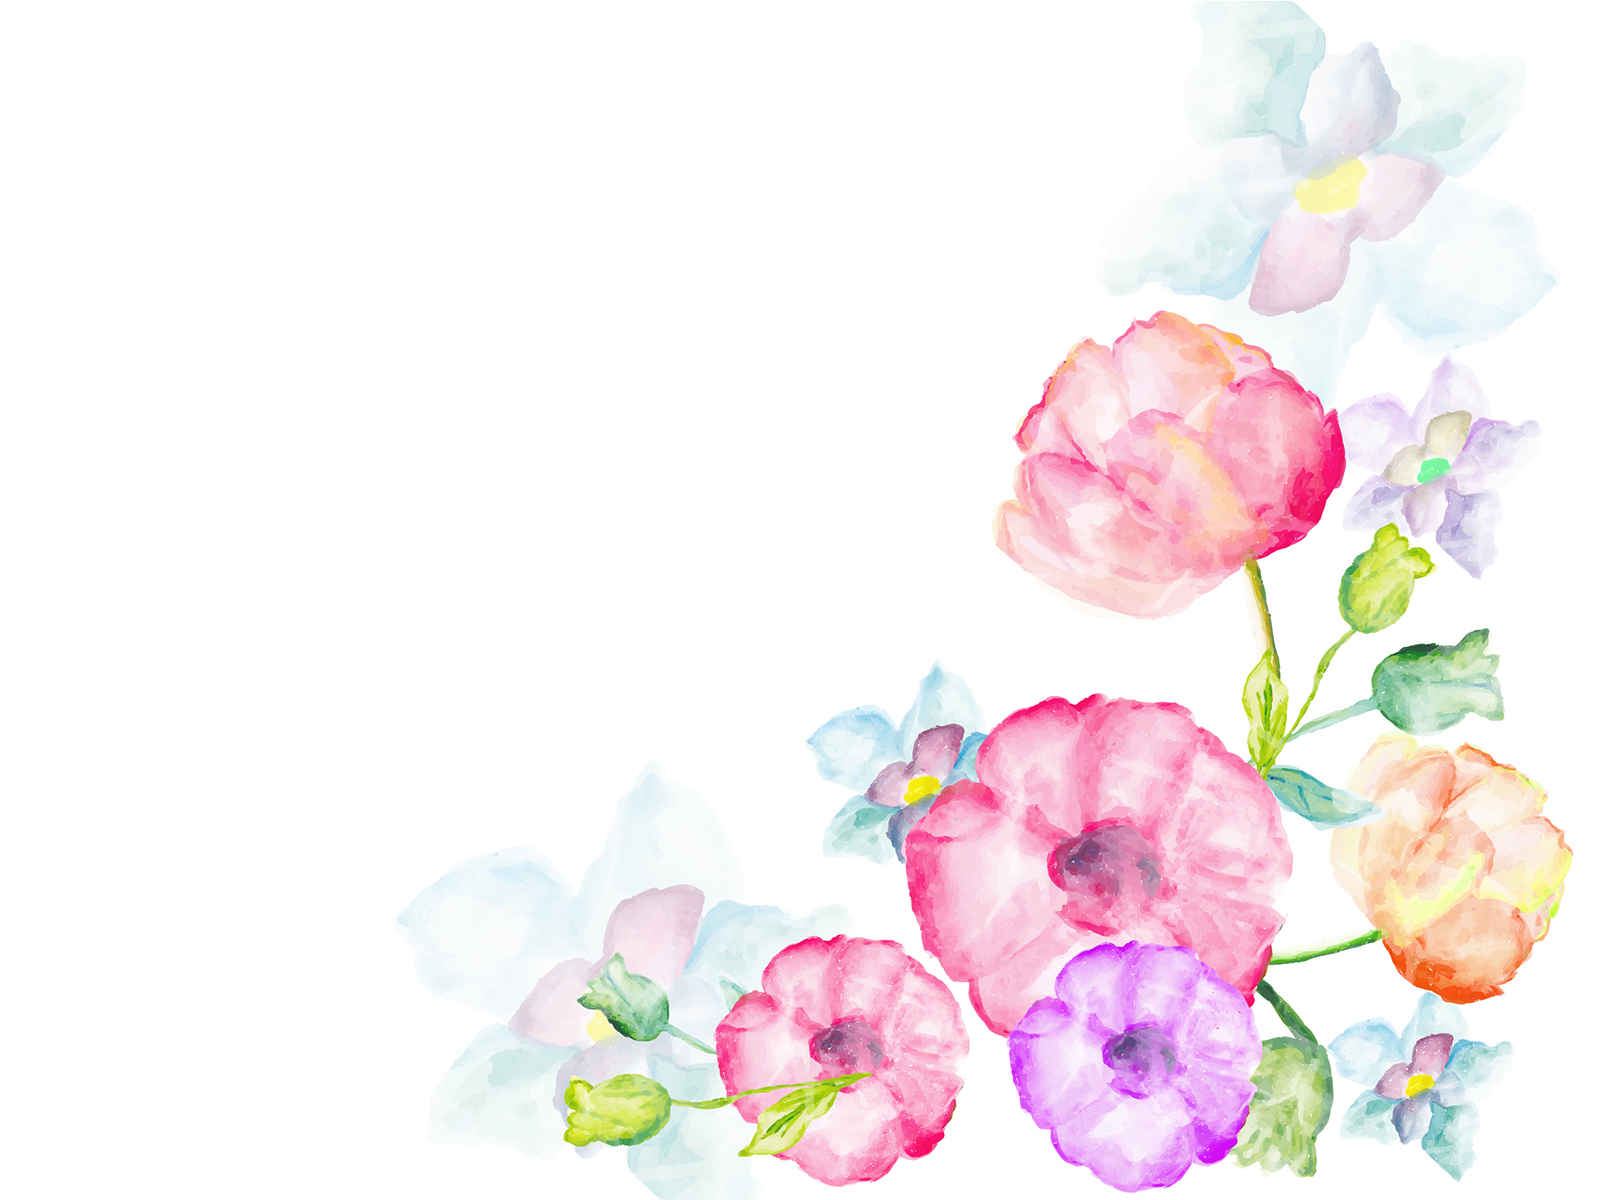 Free Download Watercolor Flowers Greetings Backgrounds Flowers